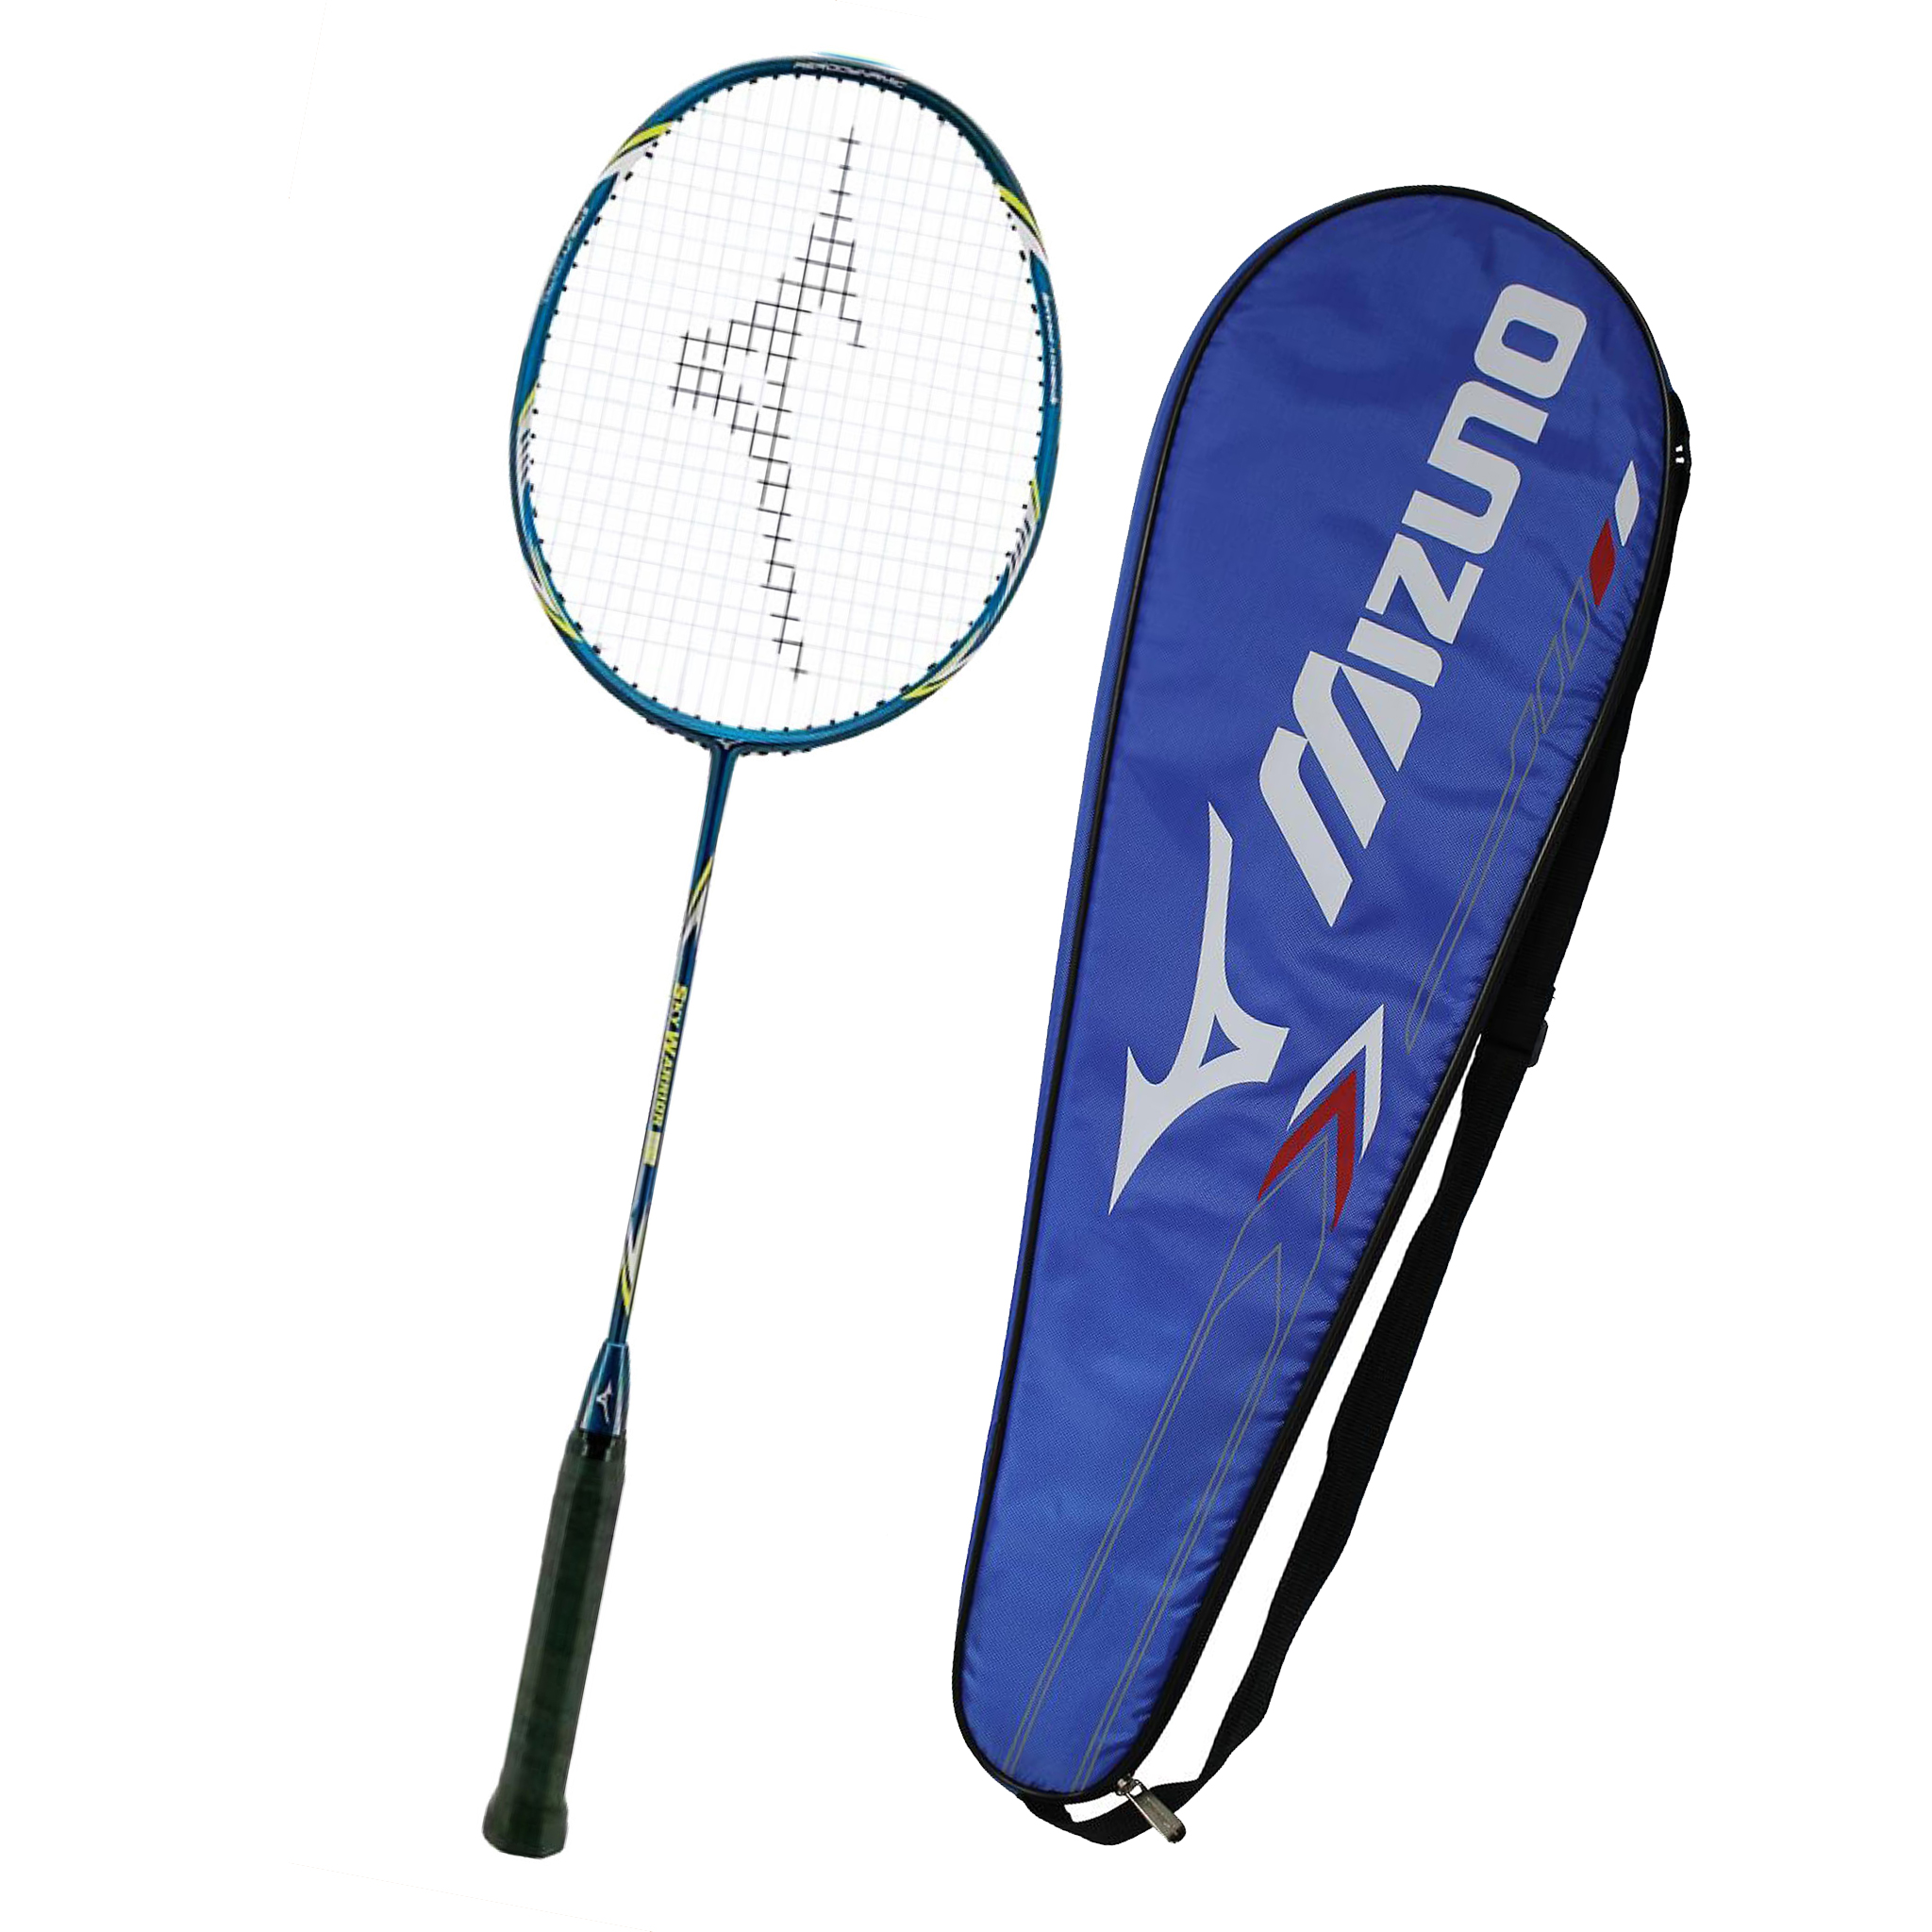 MIZUNO SKY WARRIOR 103 G5